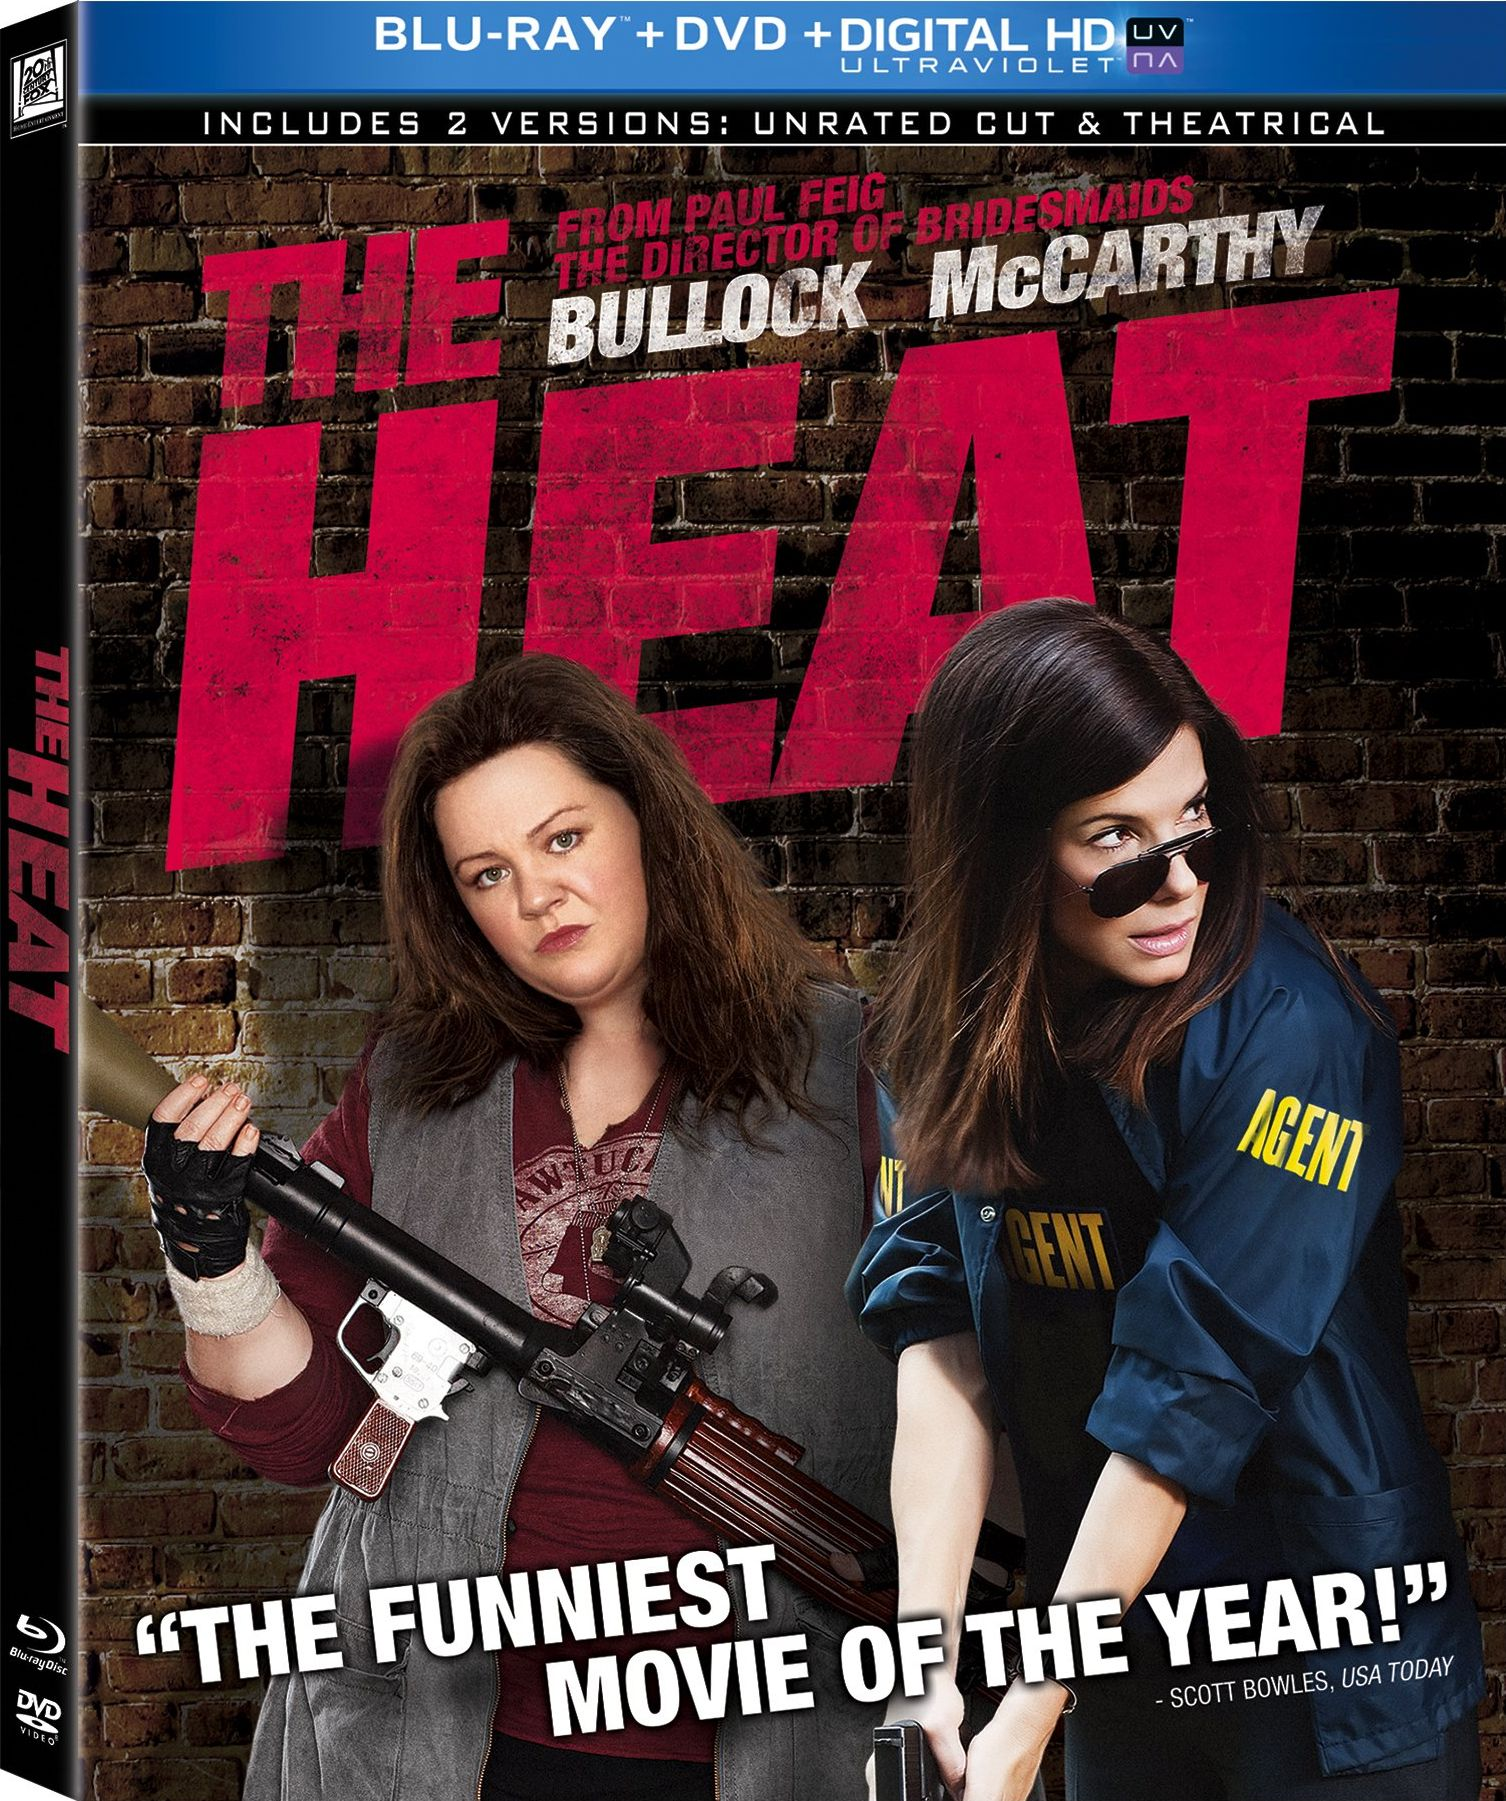 the-heat-blu-ray-cover-44 | Cinema Deviant